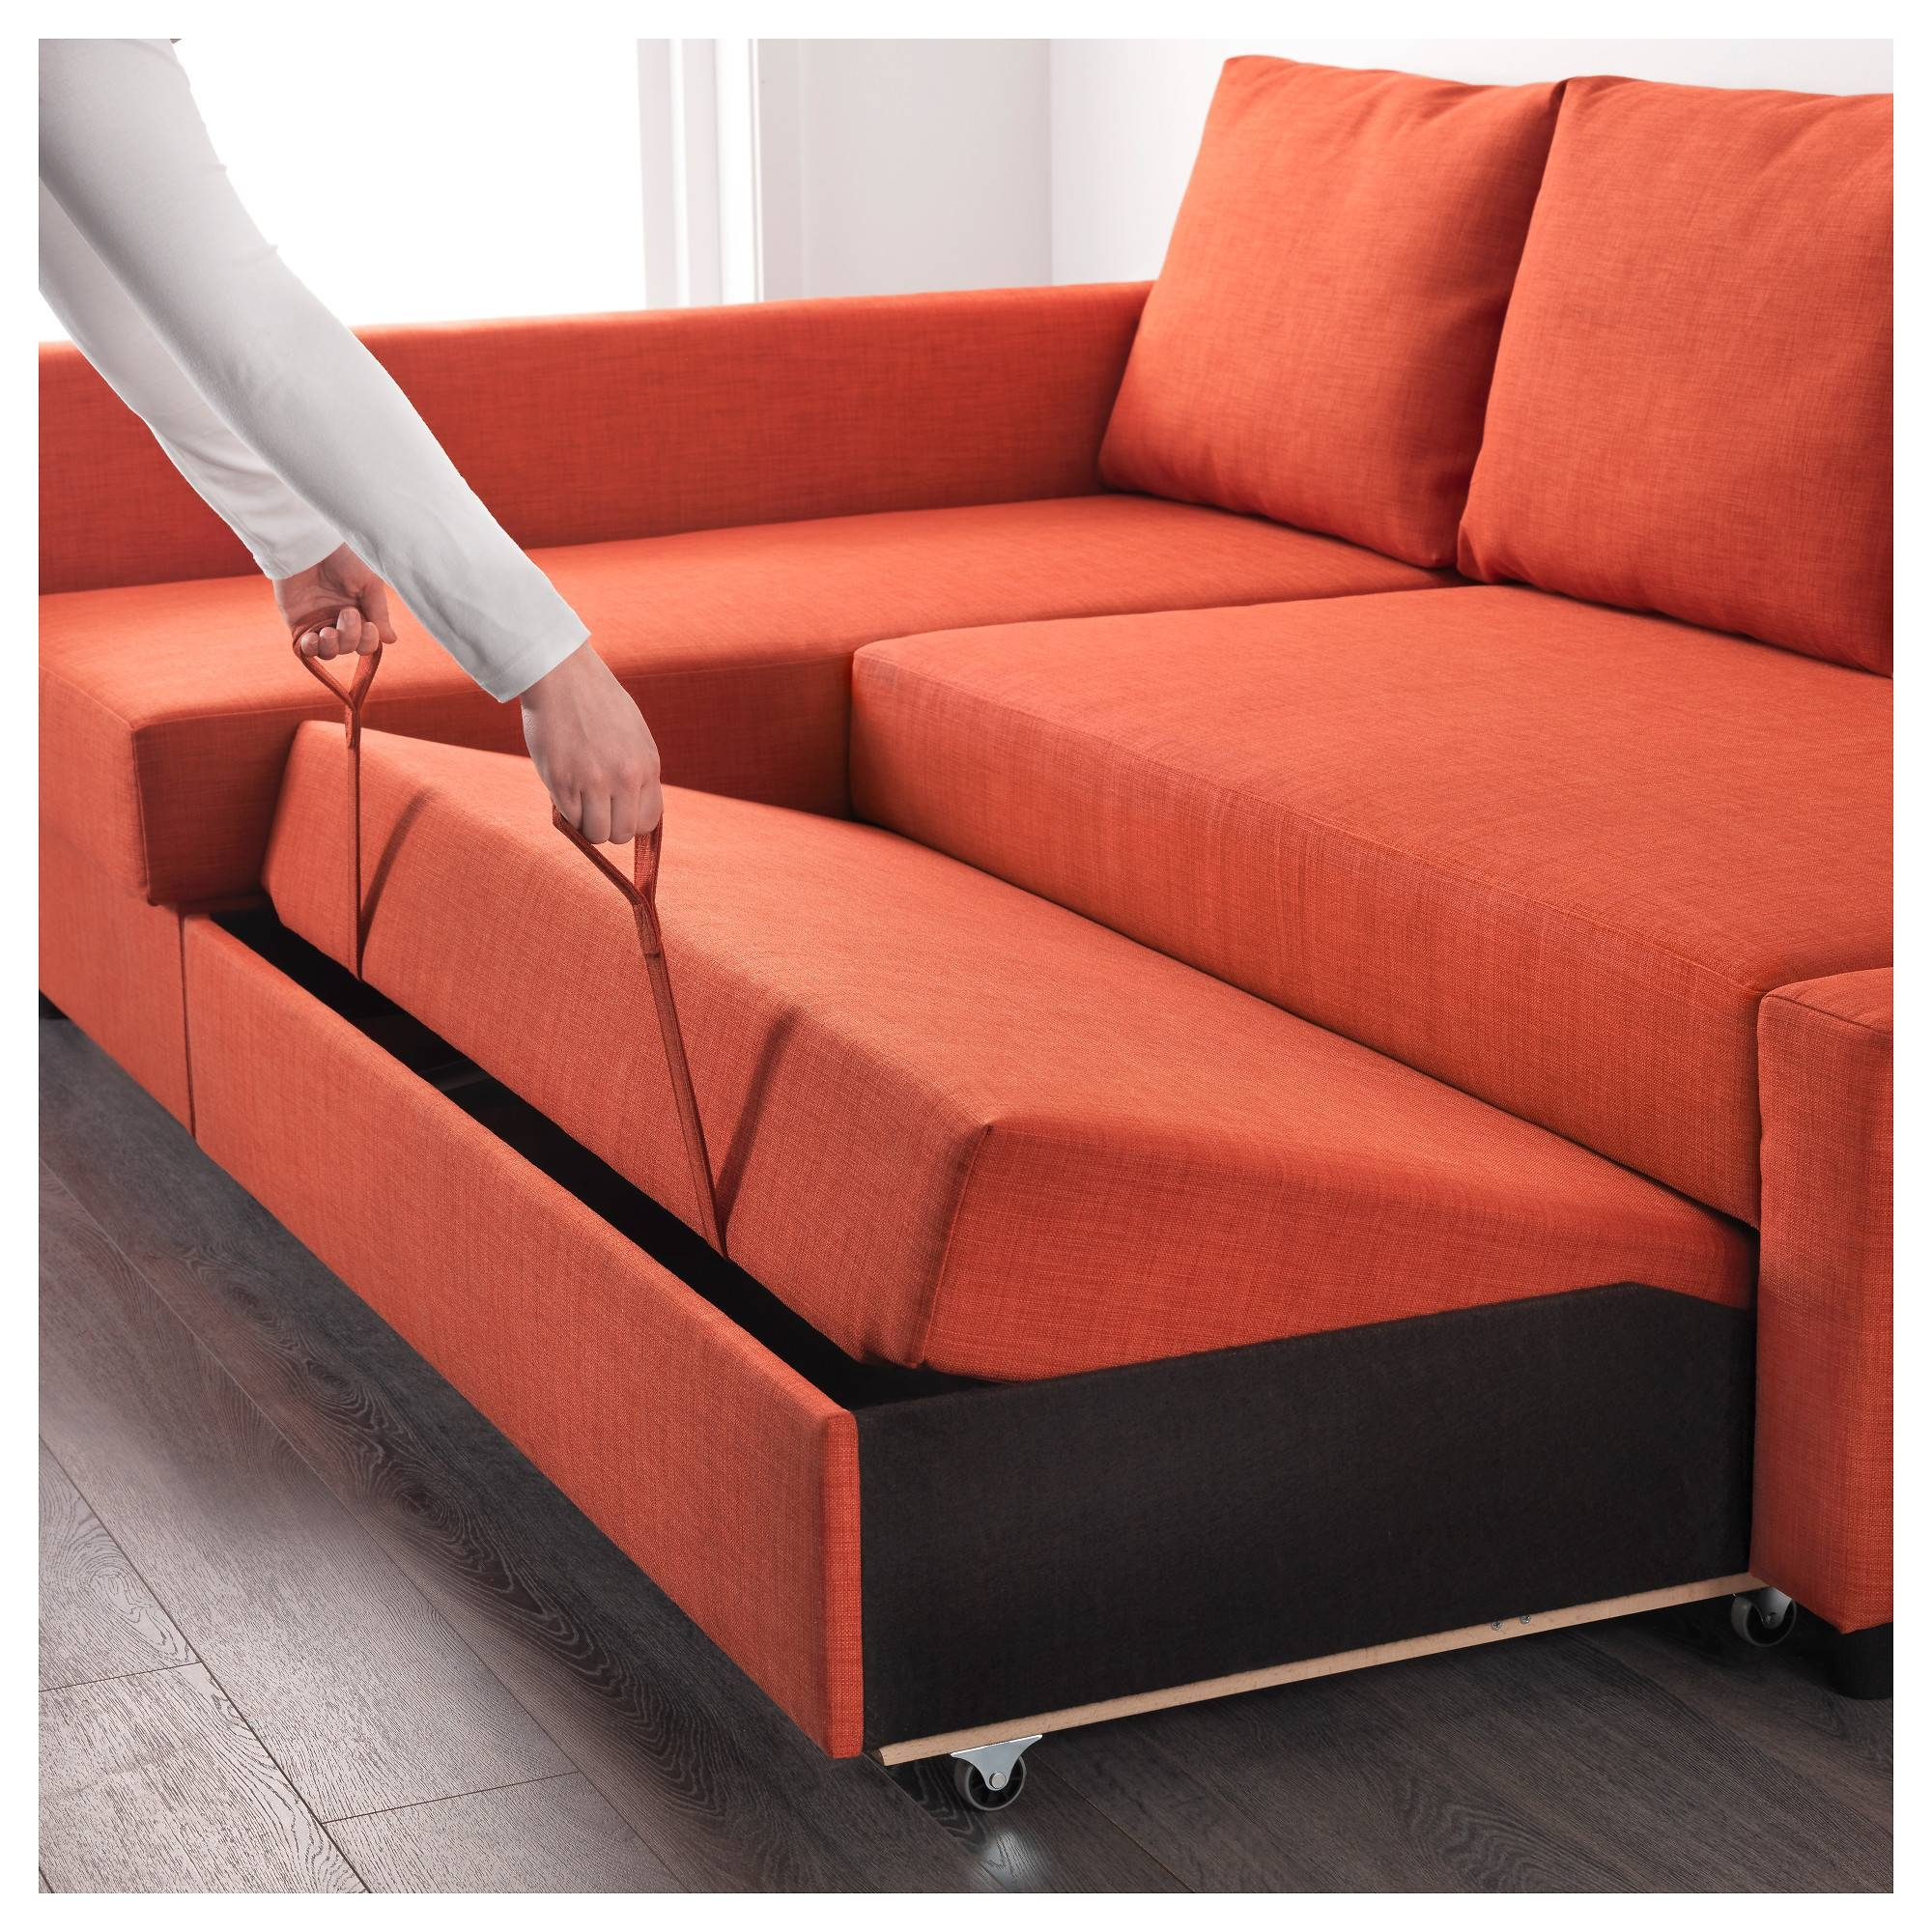 Friheten Corner Sofa-Bed With Storage Skiftebo Dark Orange - Ikea within Ikea Corner Sofa Bed With Storage (Image 15 of 25)